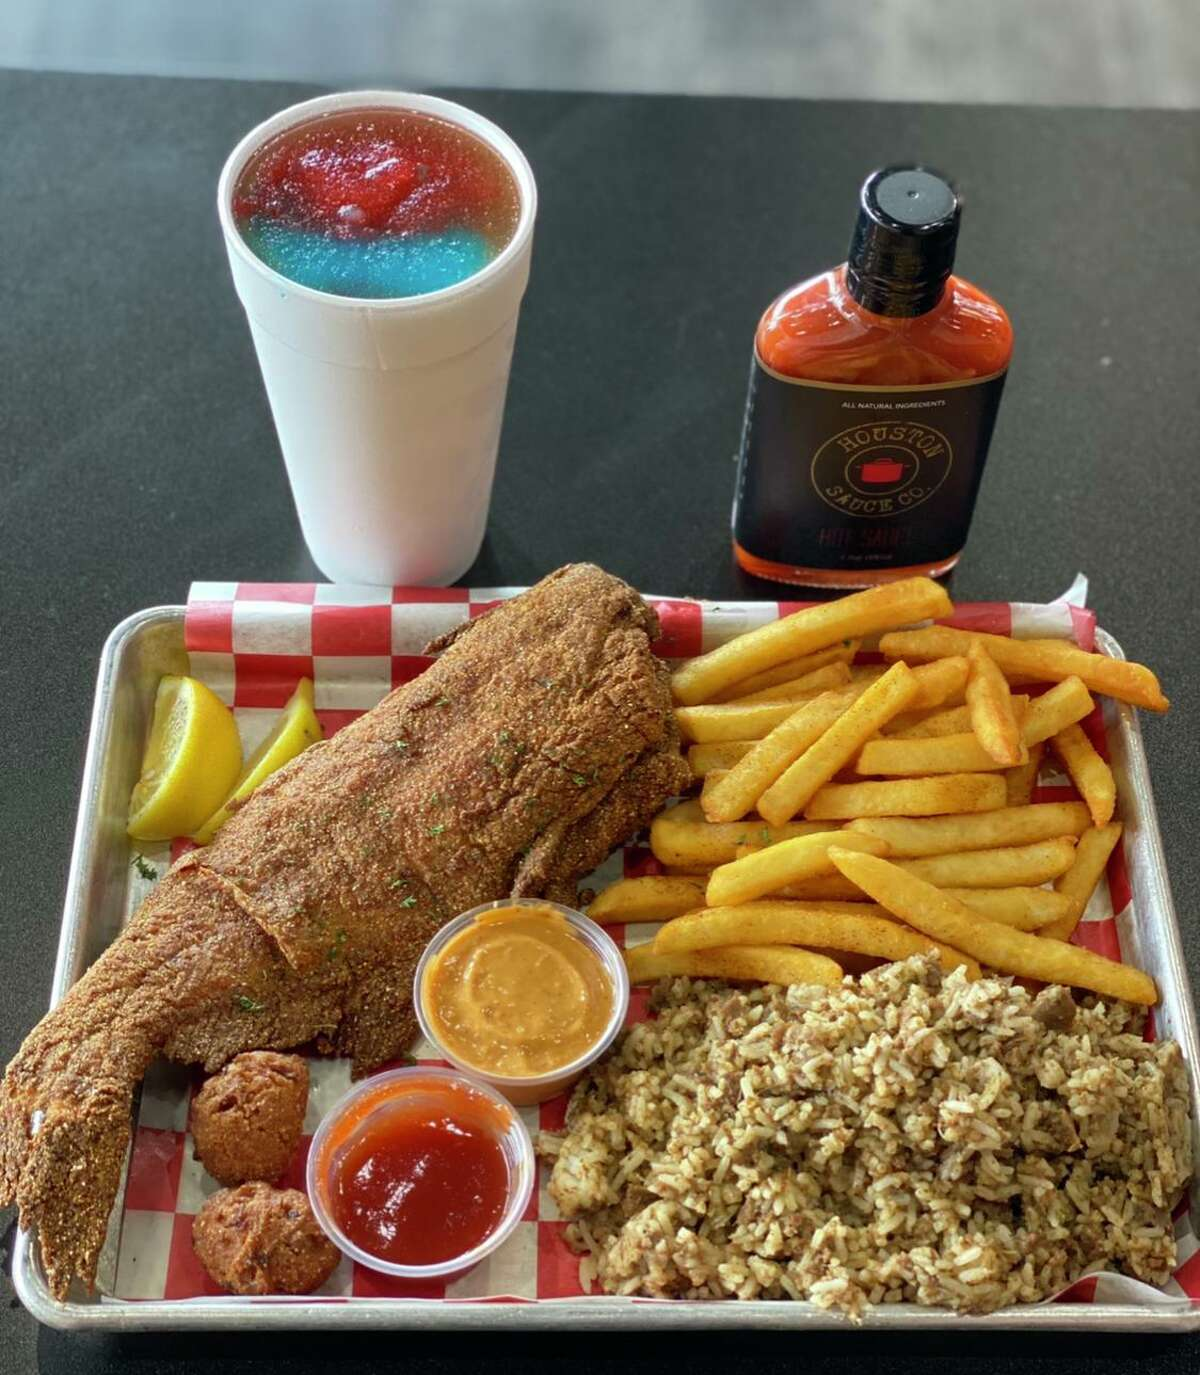 Restaurants like Kid Kreole Kooking will always have a wide range of Louisiana-style dishes to serve locals and tourists alike.